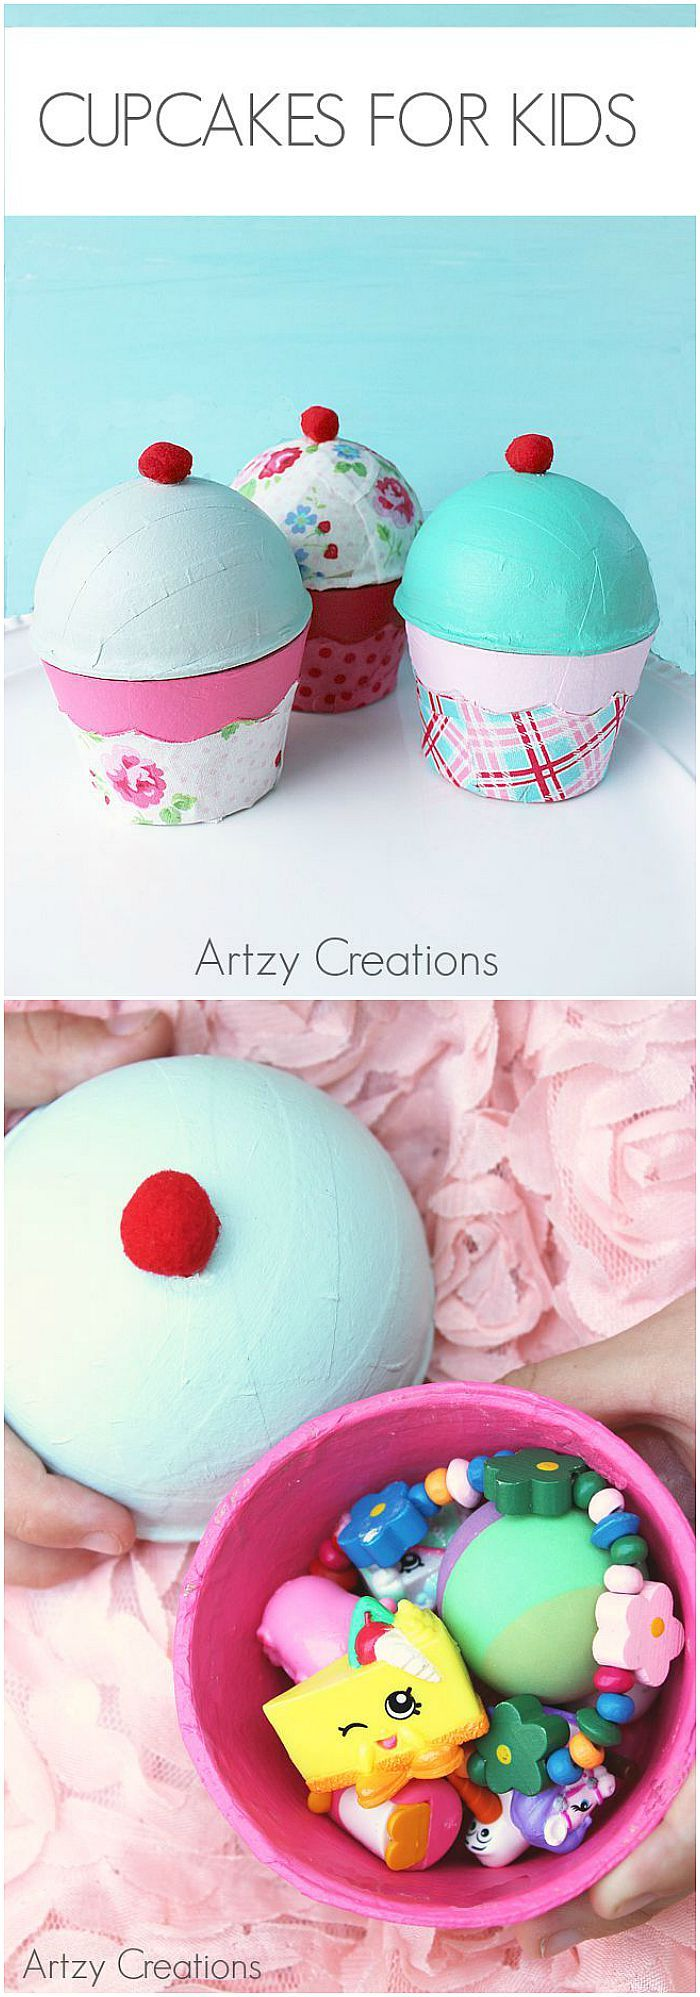 Crafts - Super cute Cupcakes for Kids by artzycreations.com Adorable for party favors! PIN IT NOW AND MAKE IT LATER!